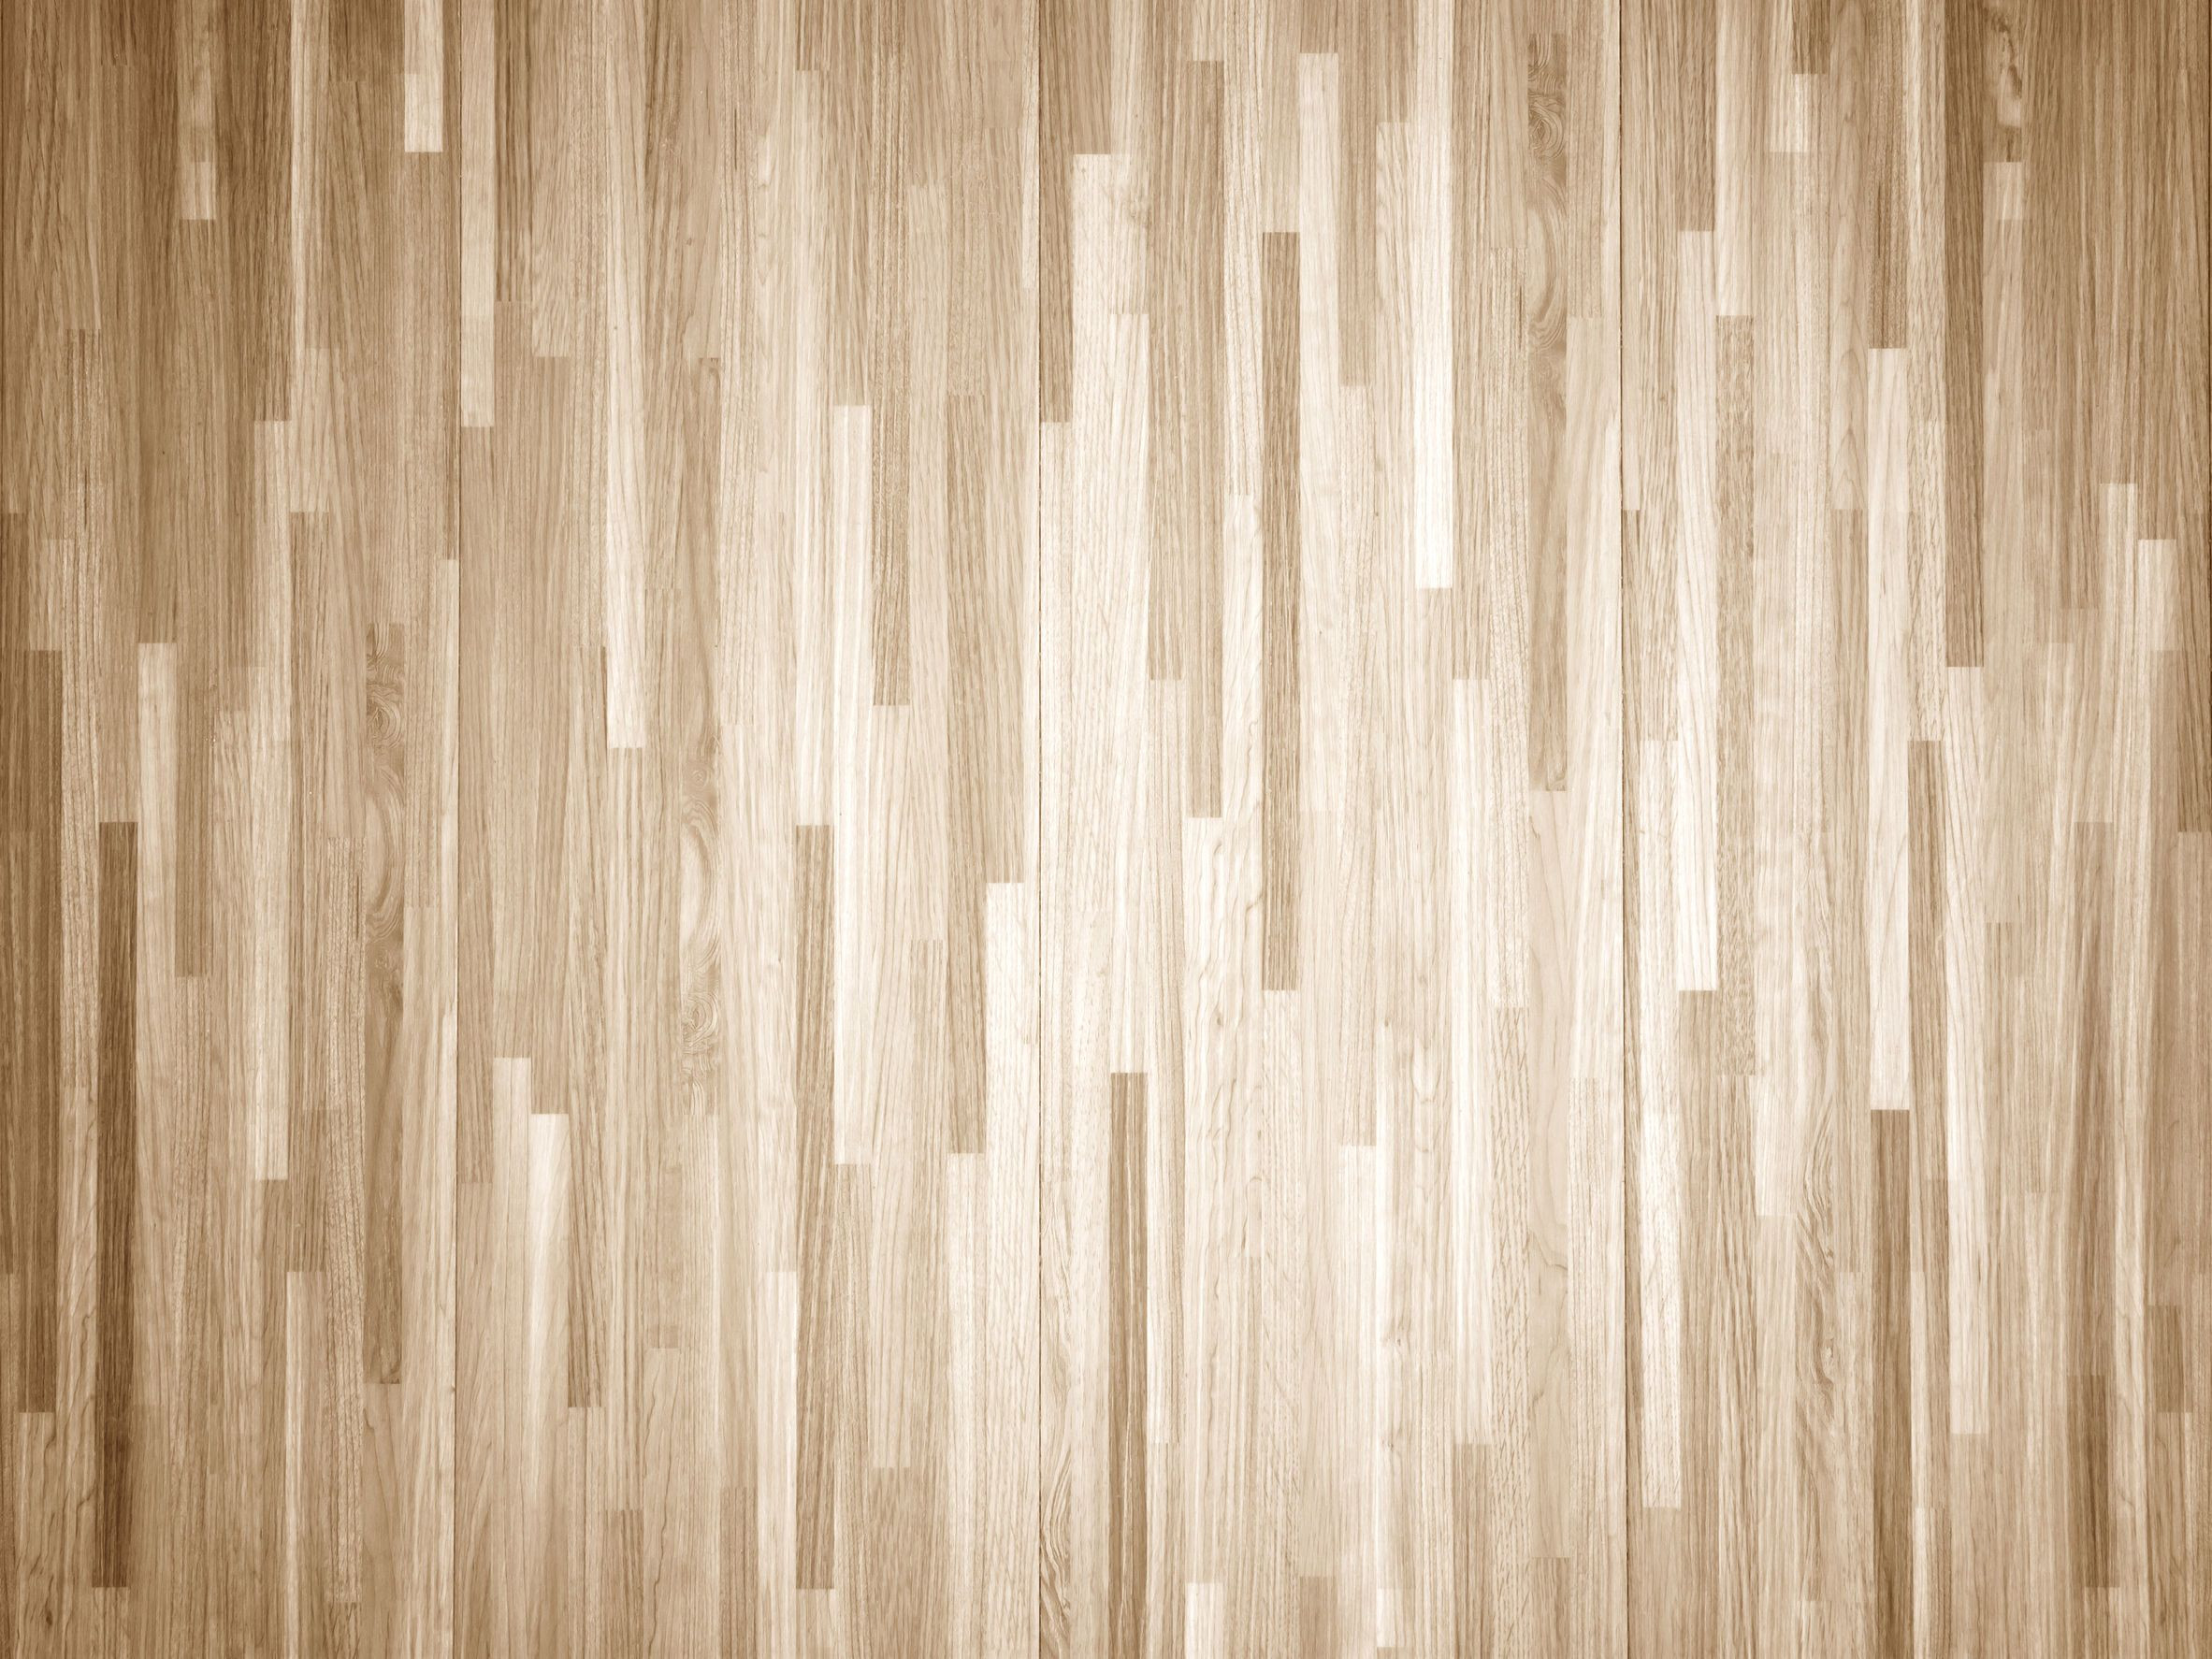 how much does a hardwood floor cost with installation of how to chemically strip wood floors woodfloordoctor com in you